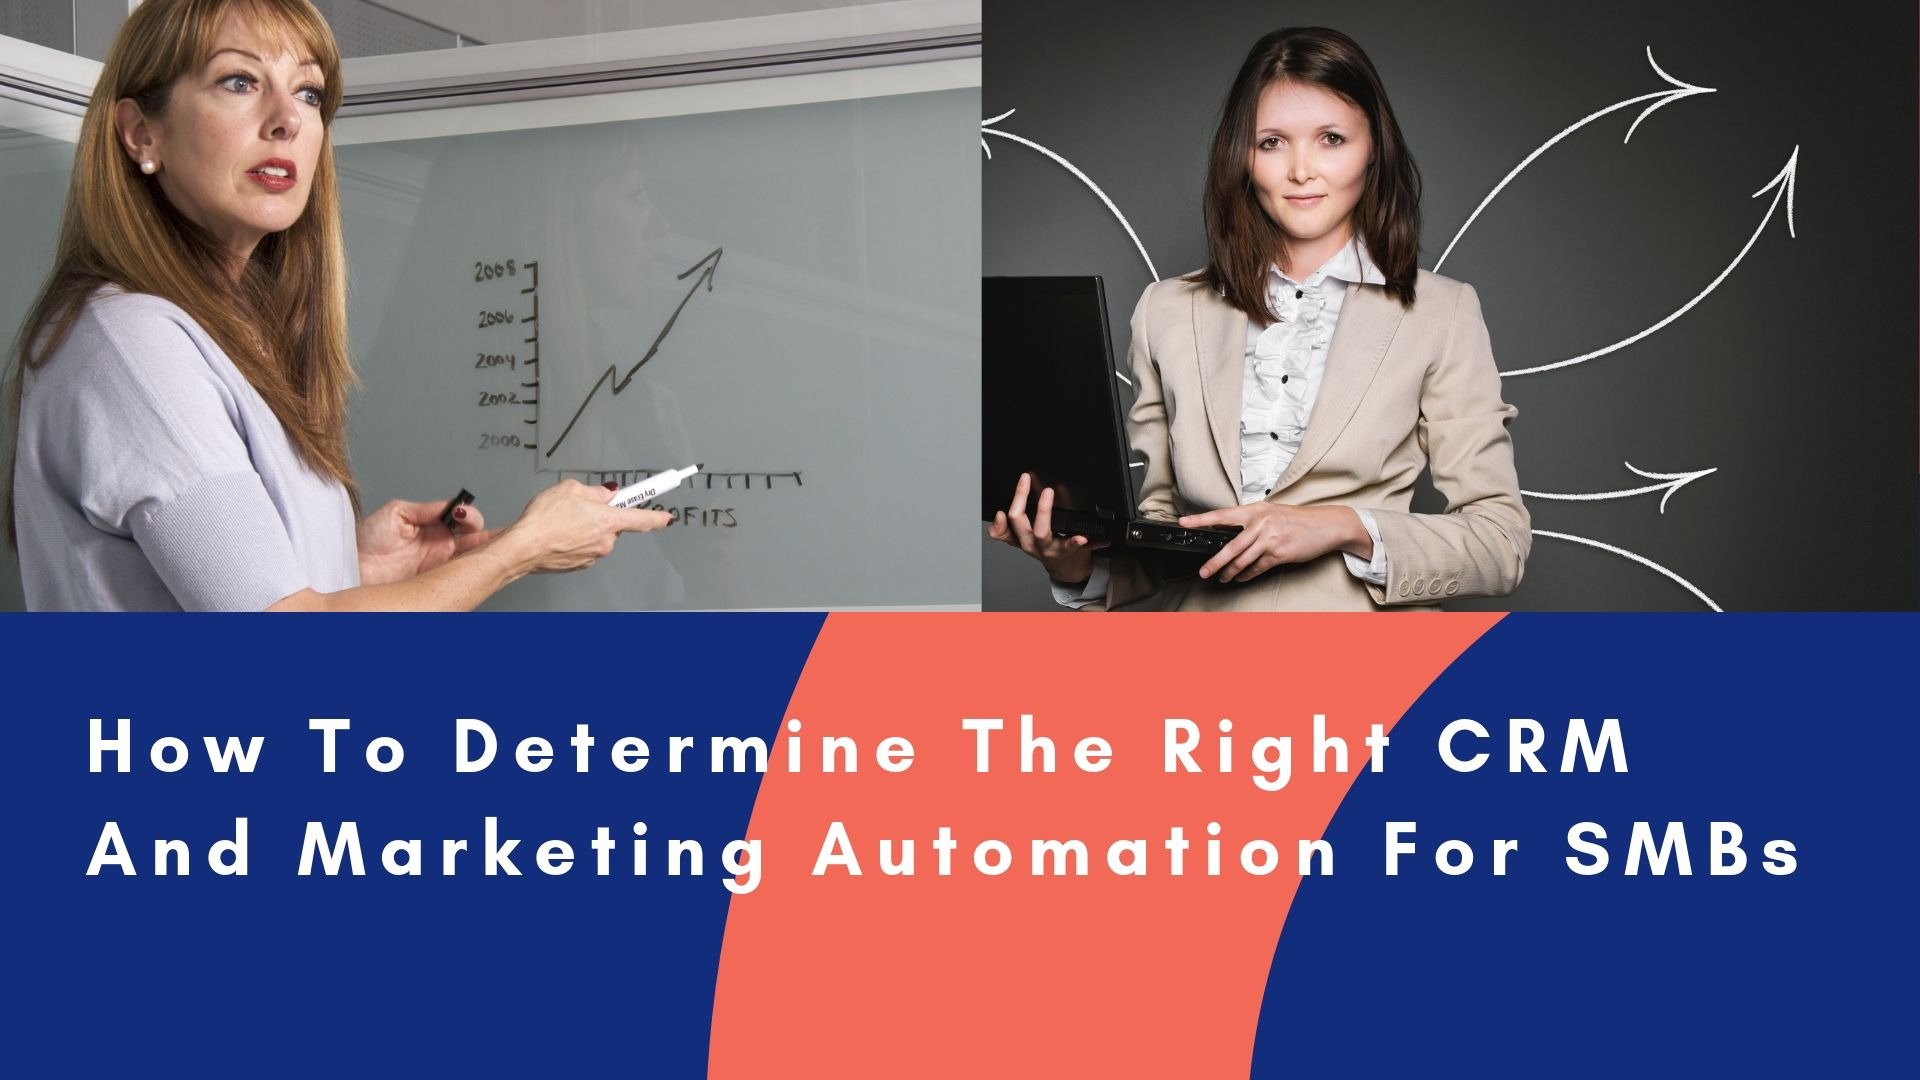 How To Determine The Right CRM And Marketing Automation Tools For Your SMBs